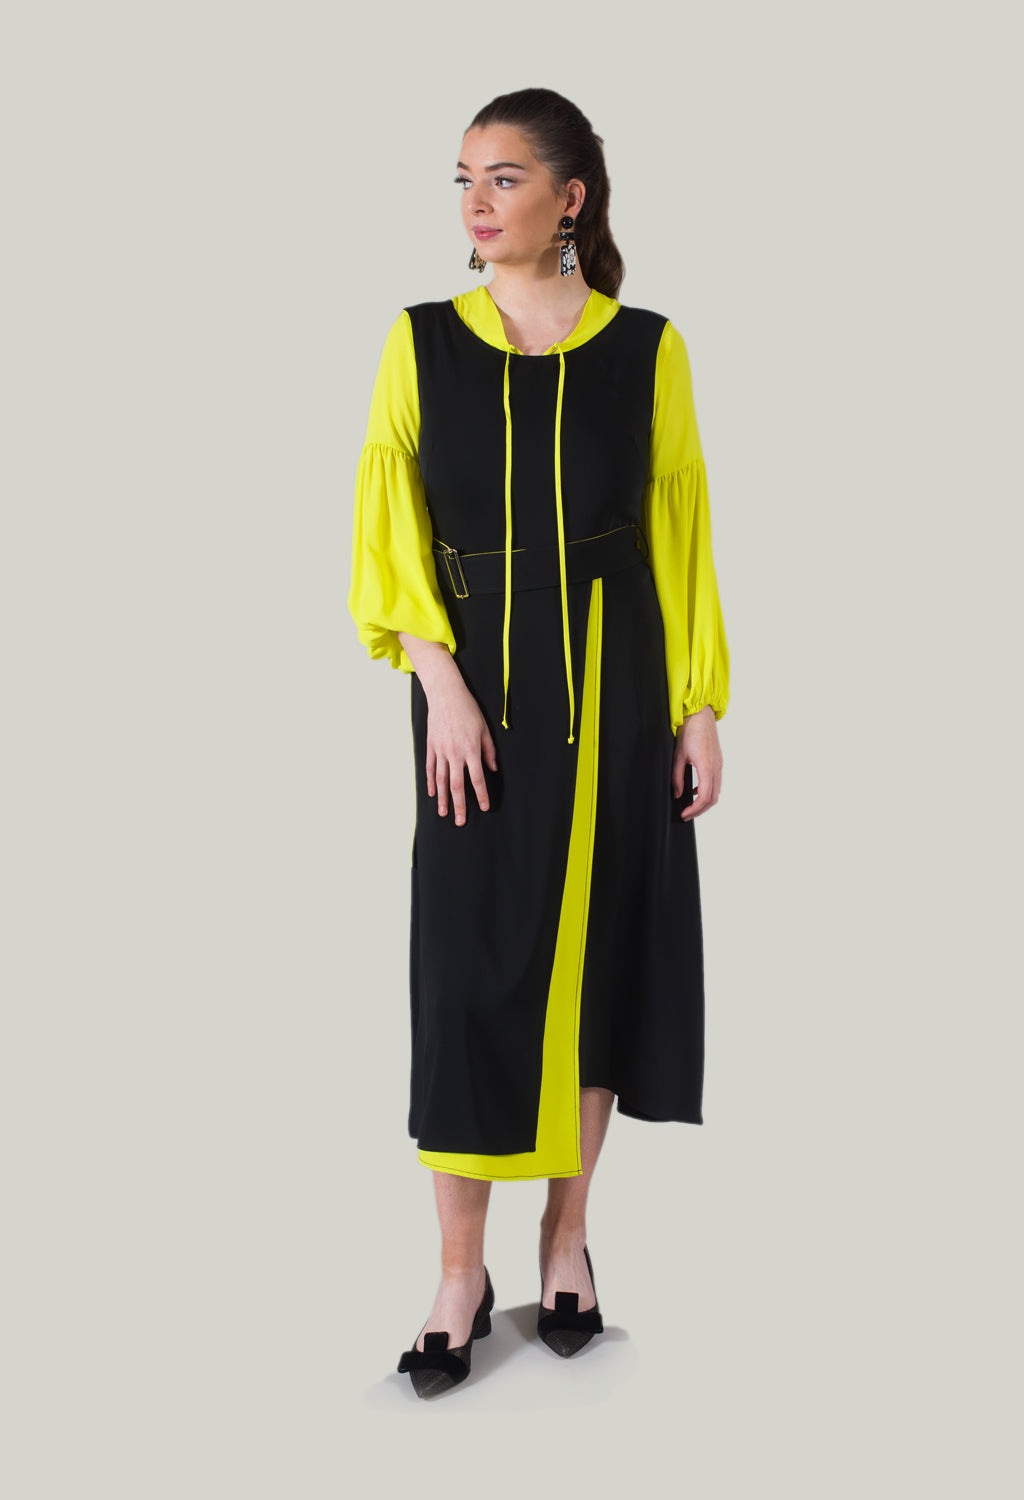 Sleeveless Dress in Yellow Fluorescent